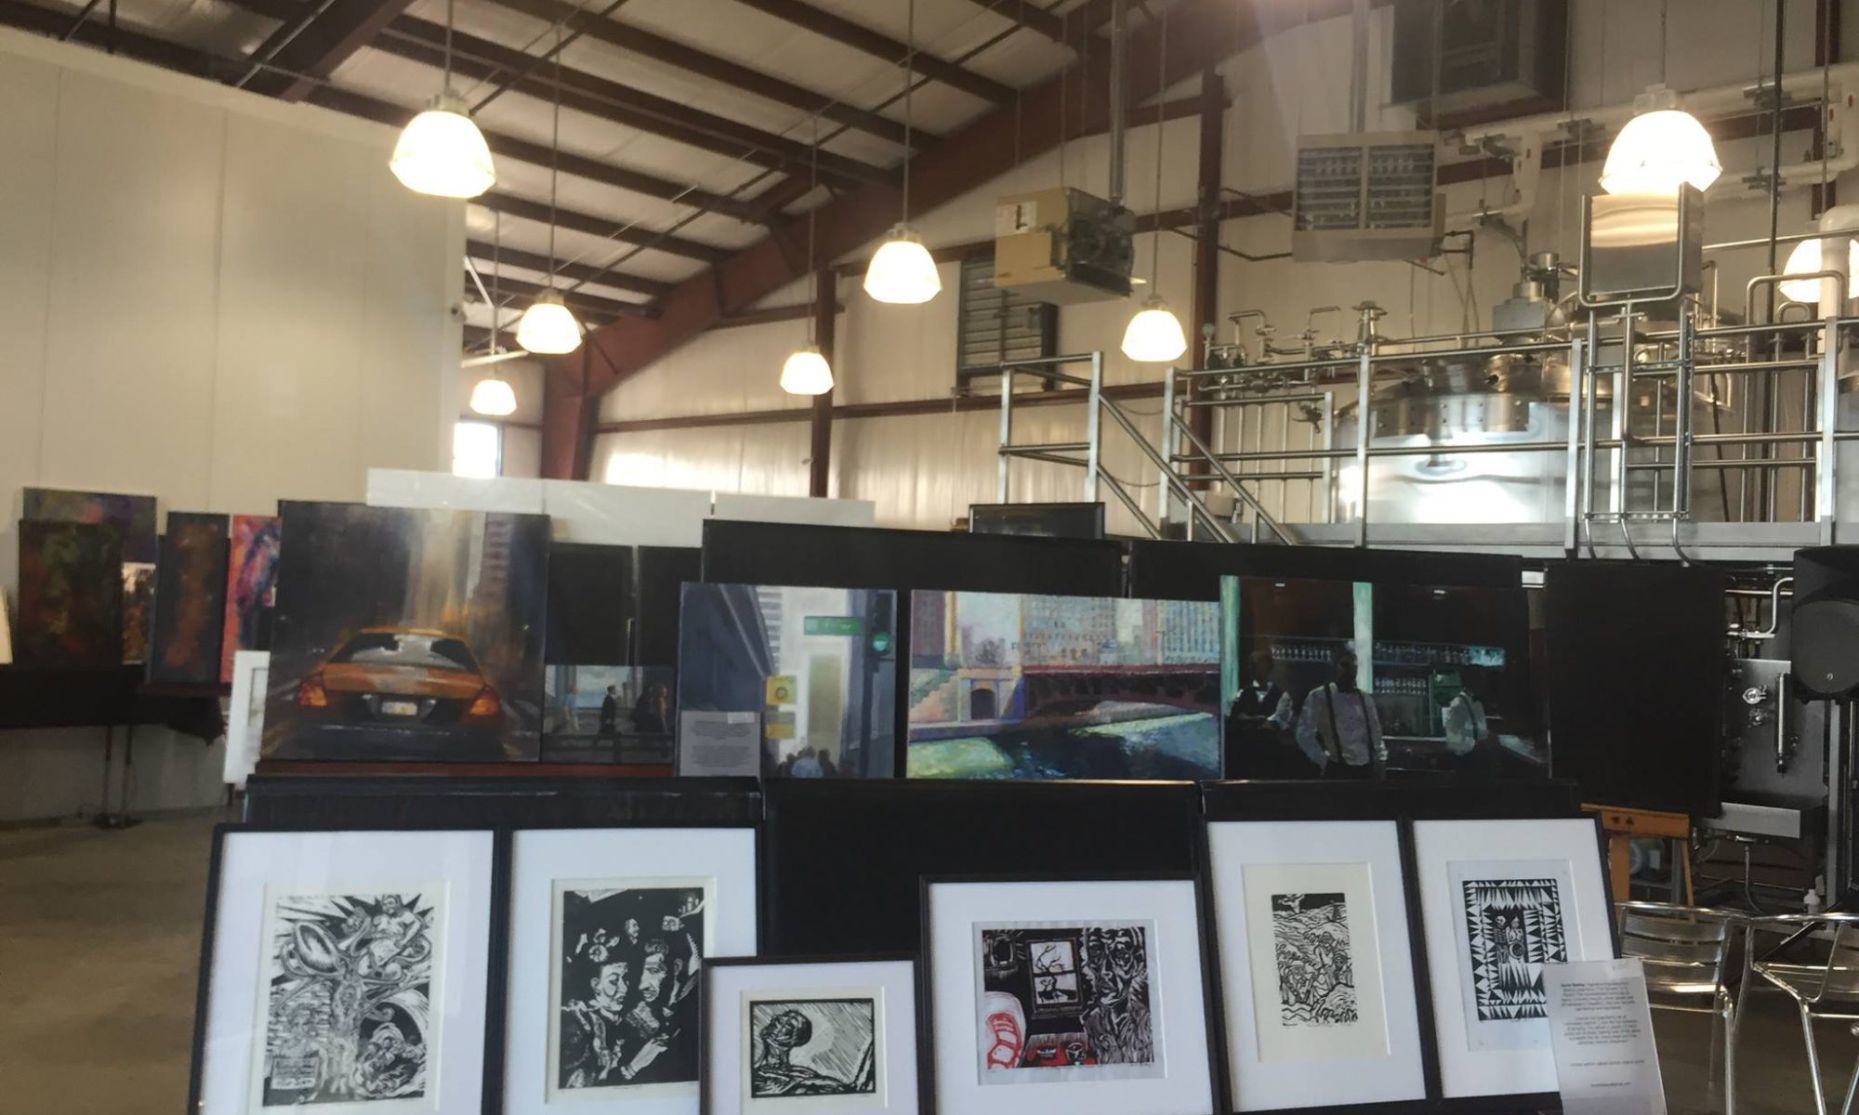 nwitimes.com - Kathleen Dorsey Times correspondent - Ula Art Gallery makes itself at home at Fancy Frugal Furniture Boutique